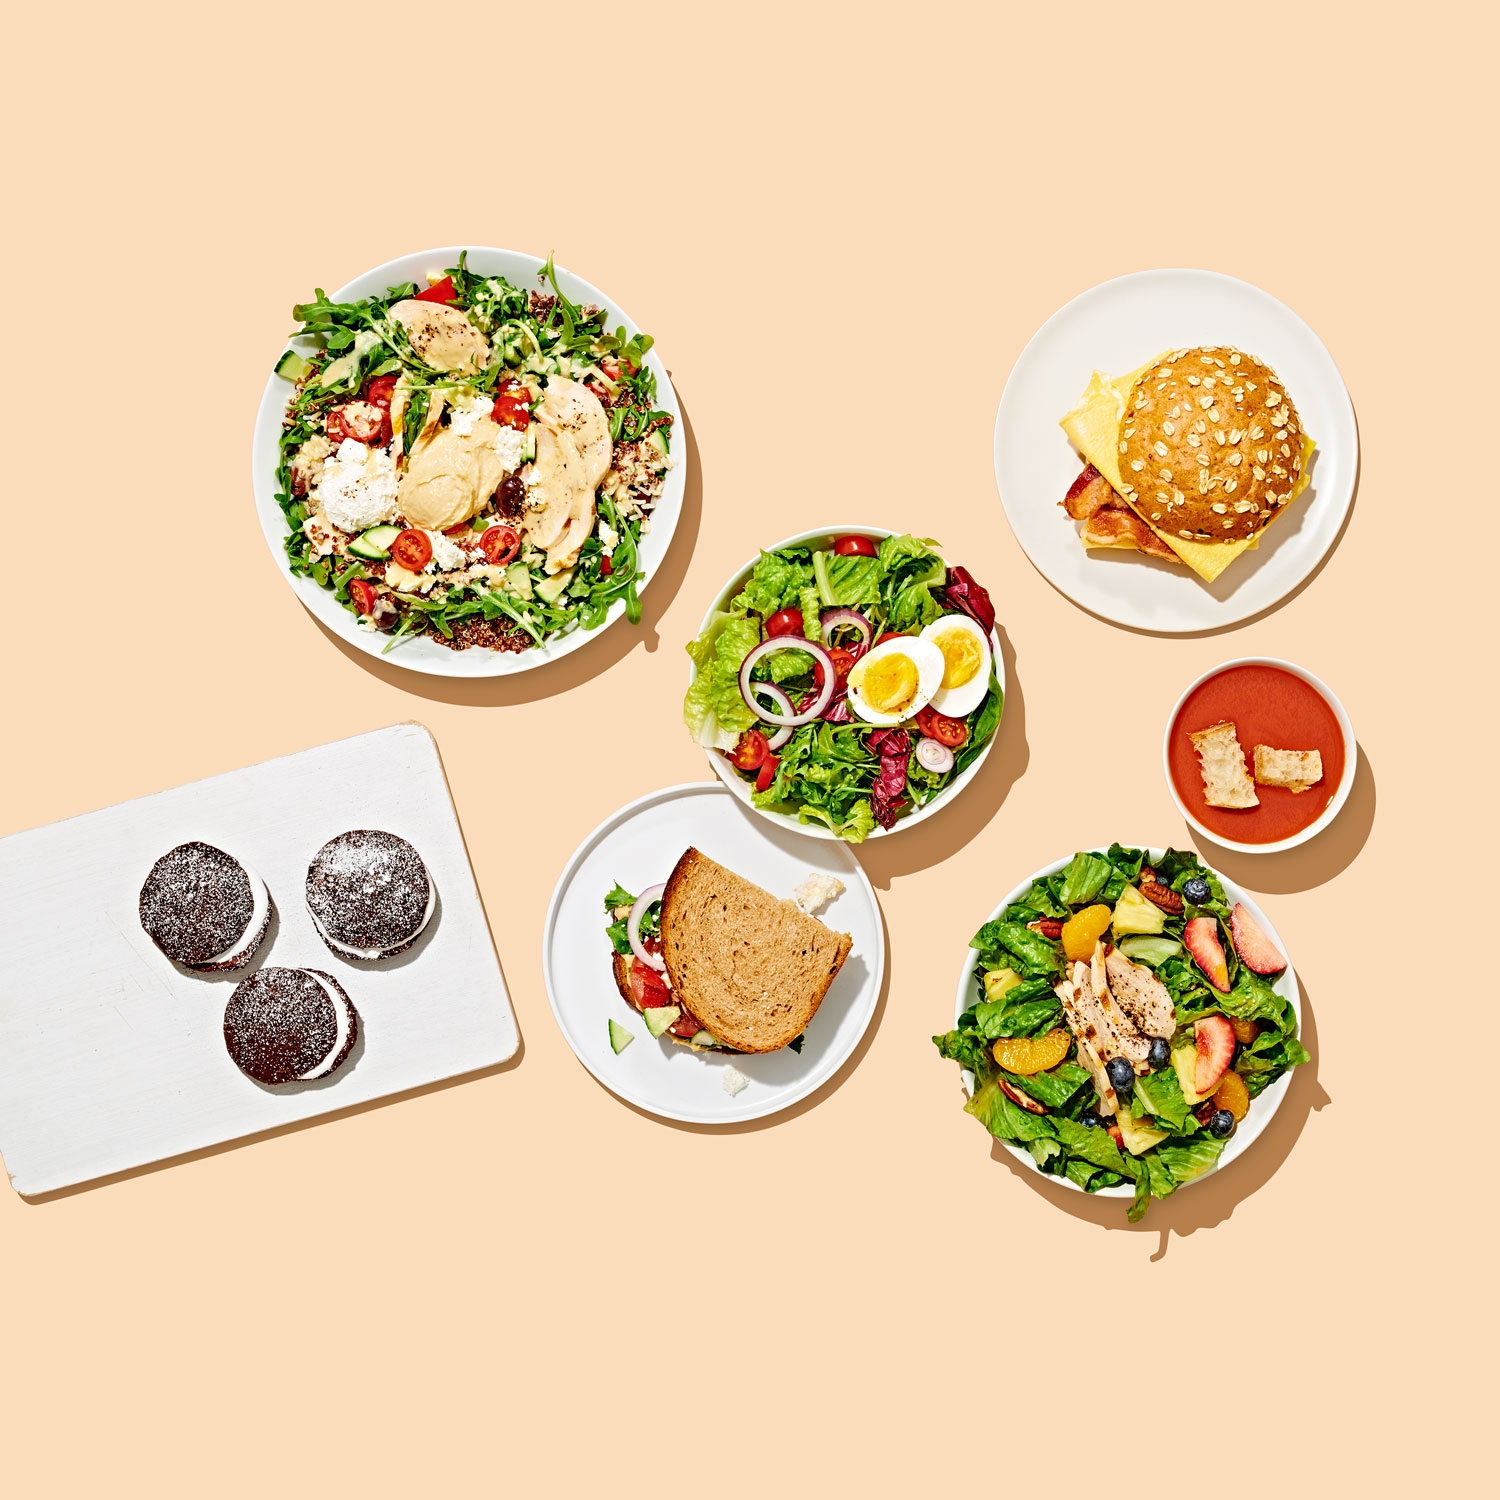 panera menu items